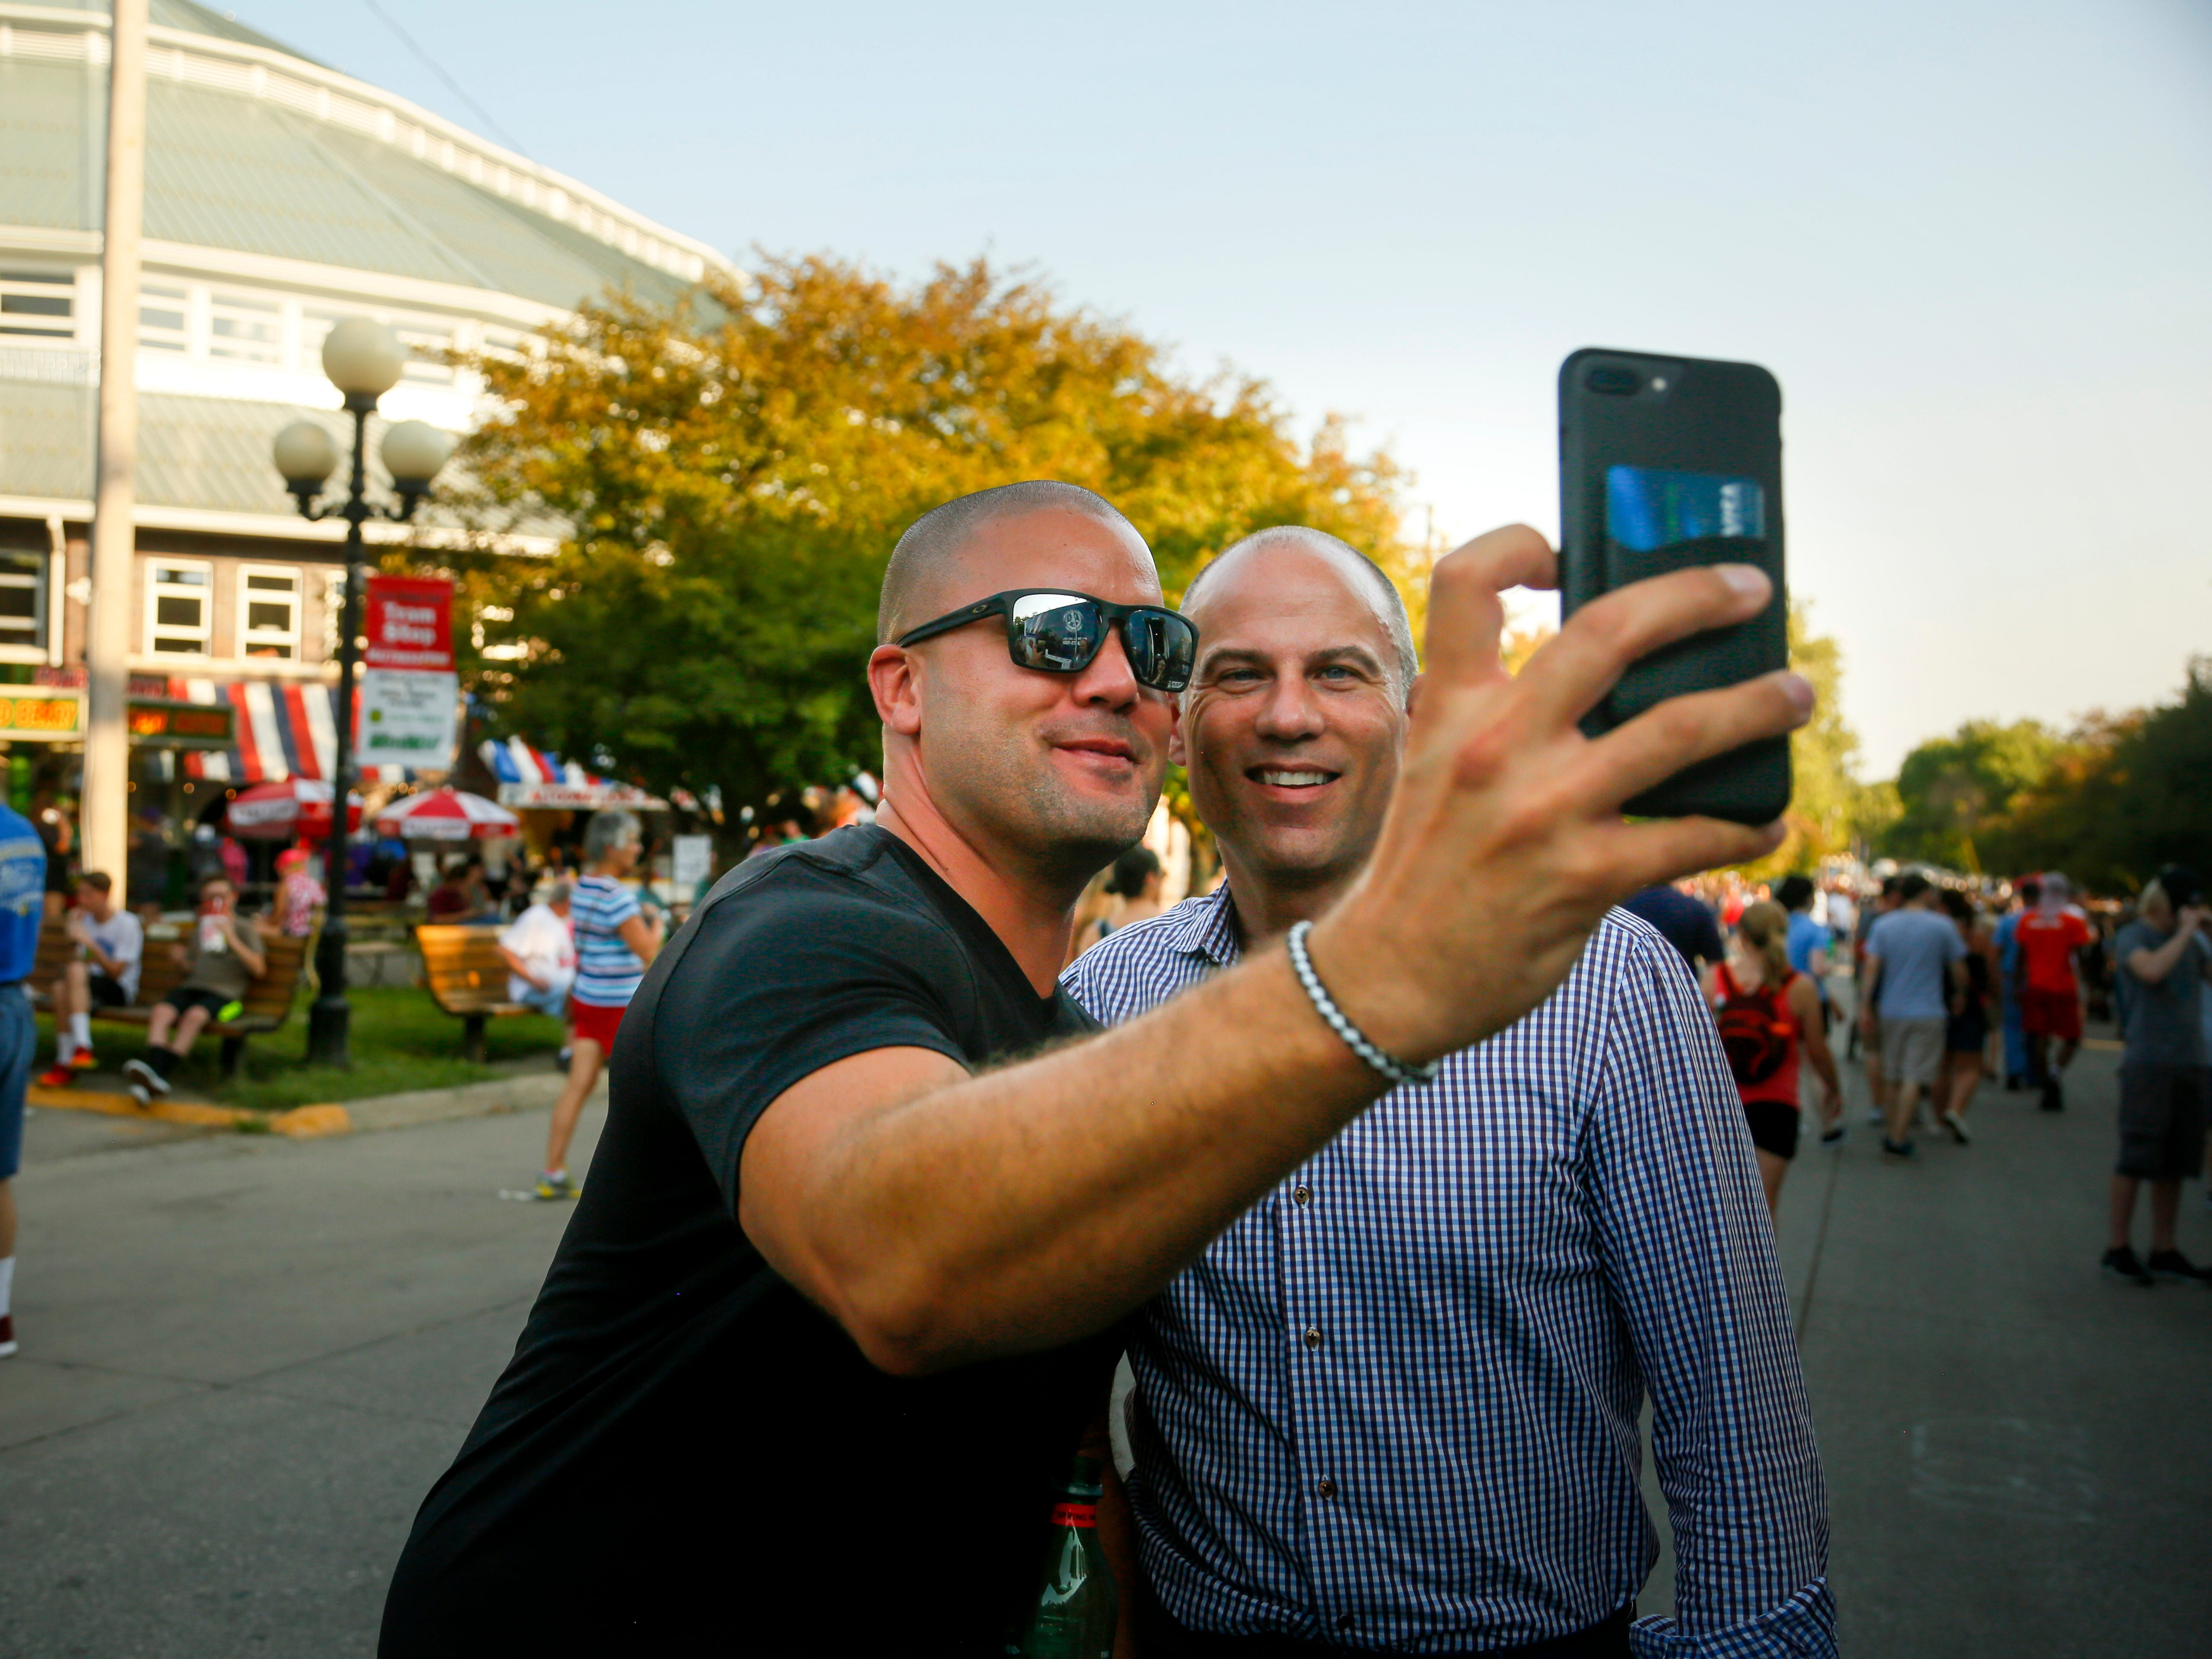 Michael Avenatti, the lawyer known for representing adult film actress Stormy Daniels in her case against President  Donald Trump poses for a selfie at the Iowa State Fair Thursday, Aug. 9, 2018.